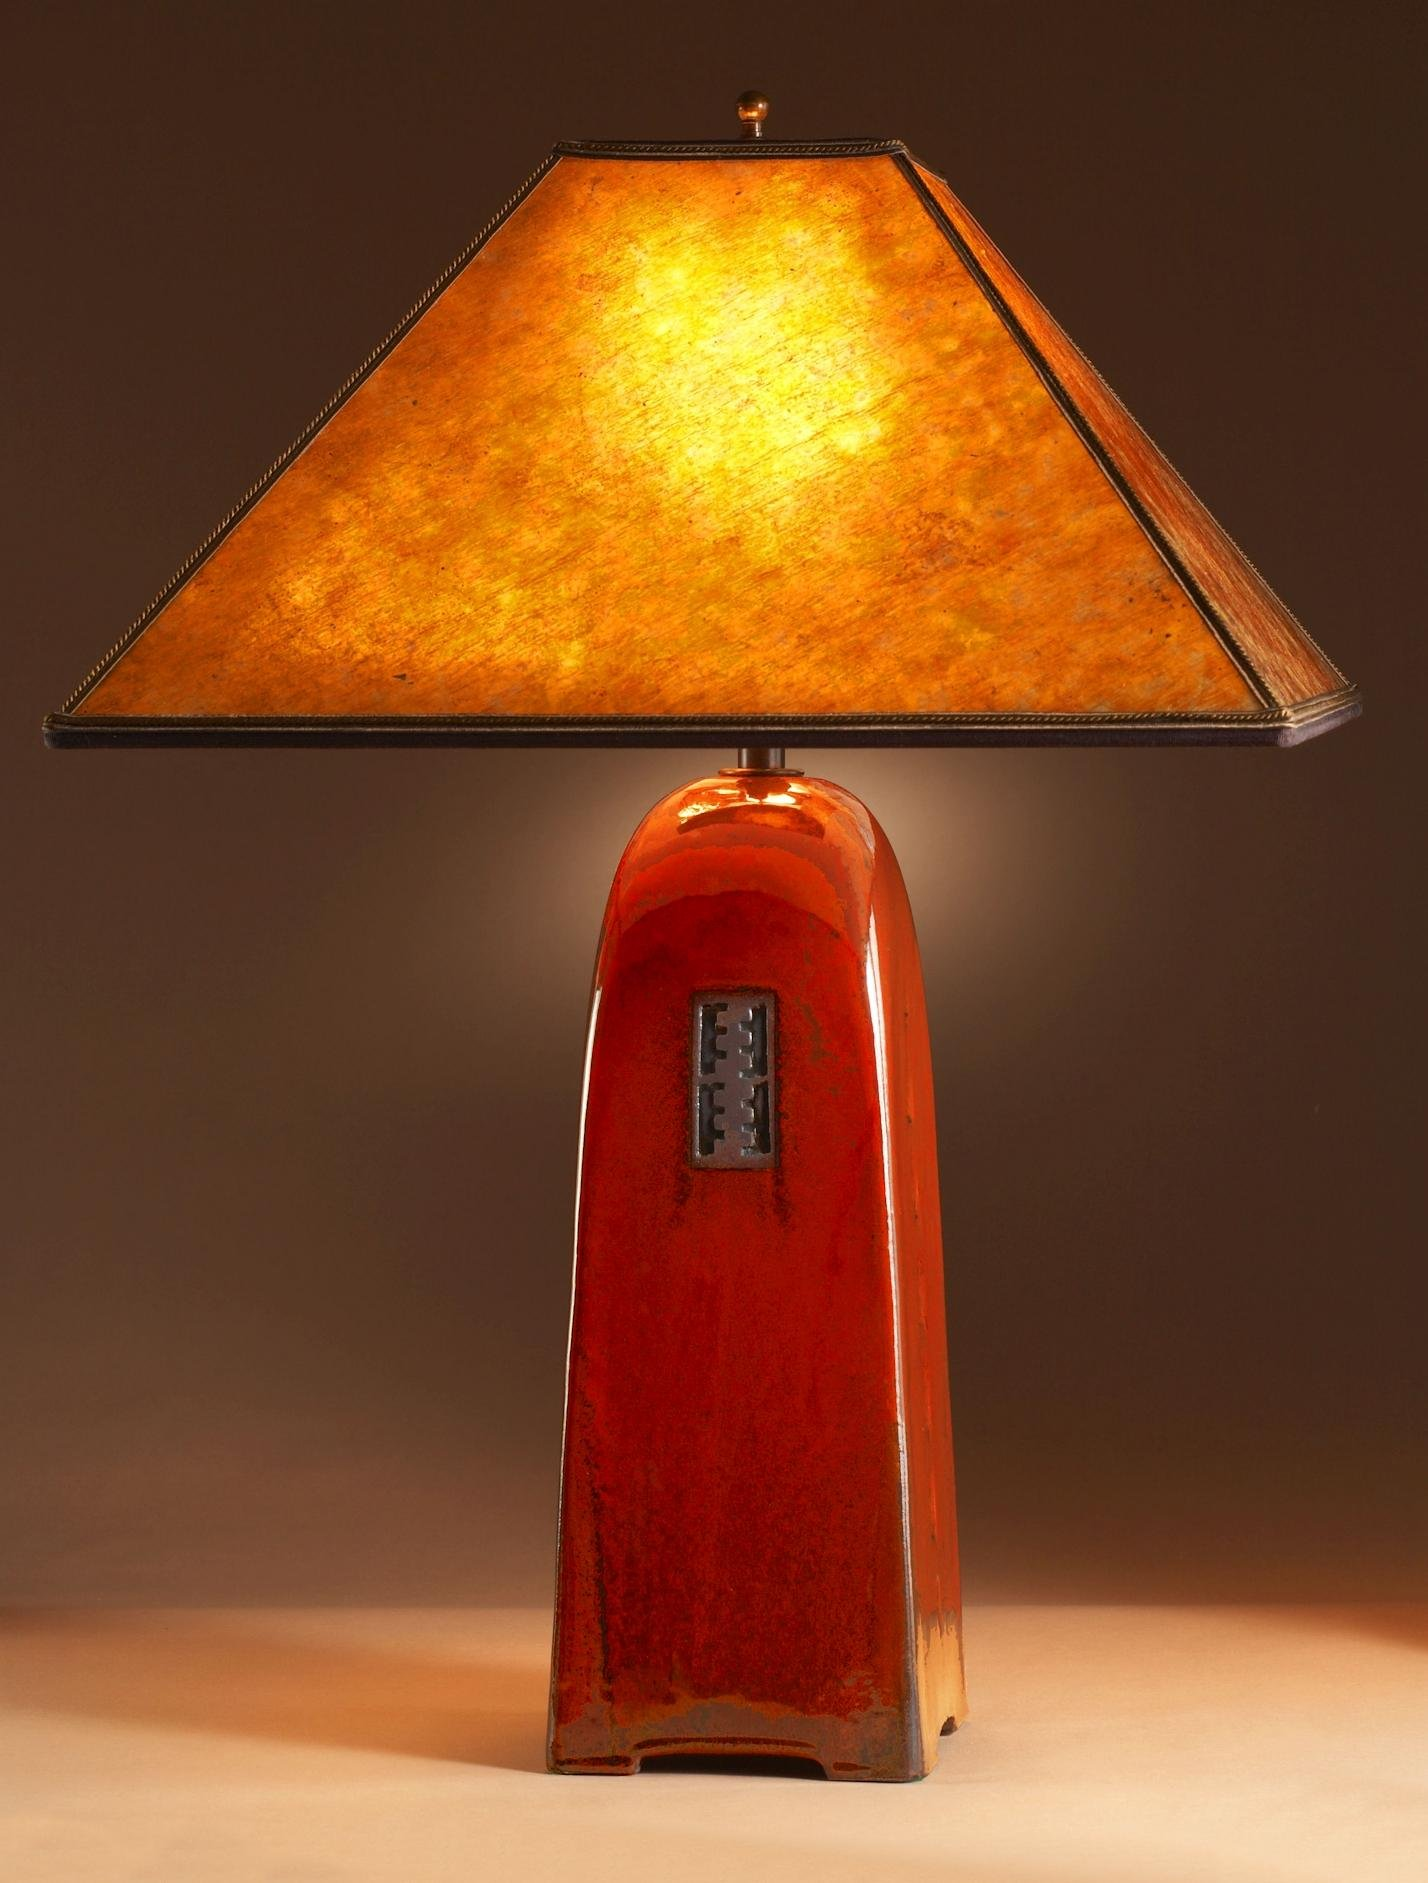 Russet Lamp with Mica Shade by Jim Webb (Ceramic Lamp) Artful Home